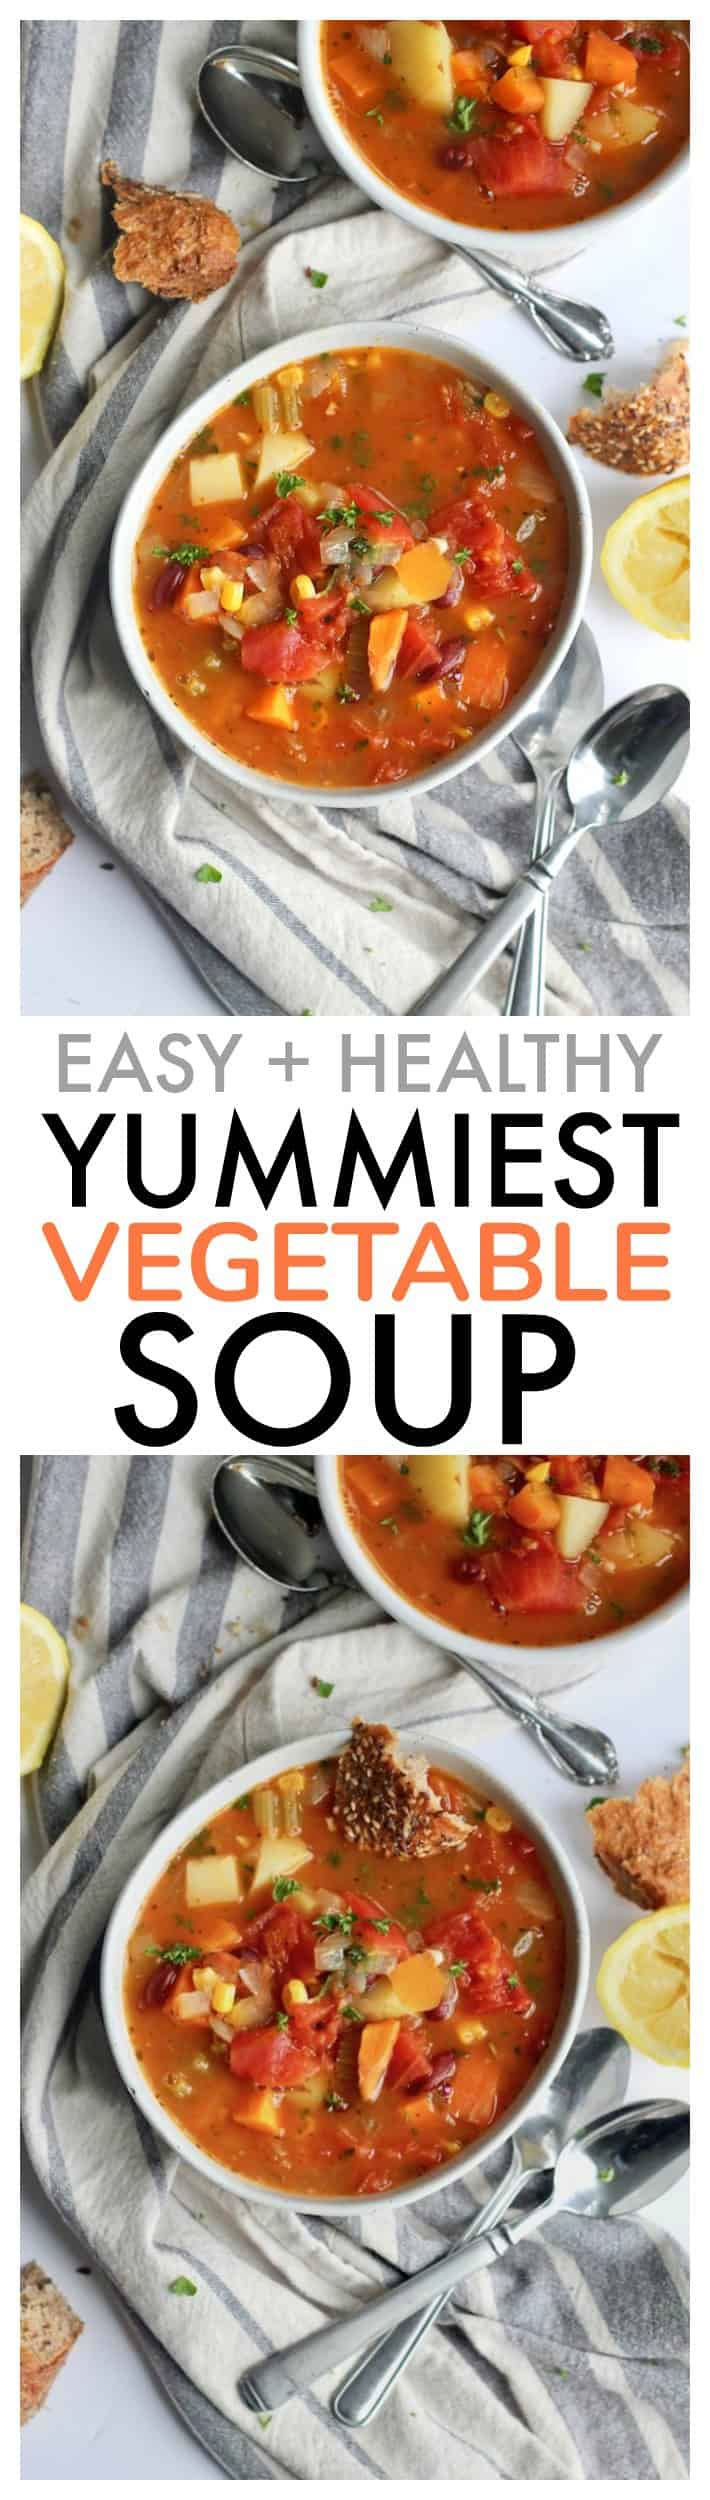 Packed with all kinds of veggies, this easy healthy loaded vegetable soup will become a new family favorite. Serve with crusty bread!